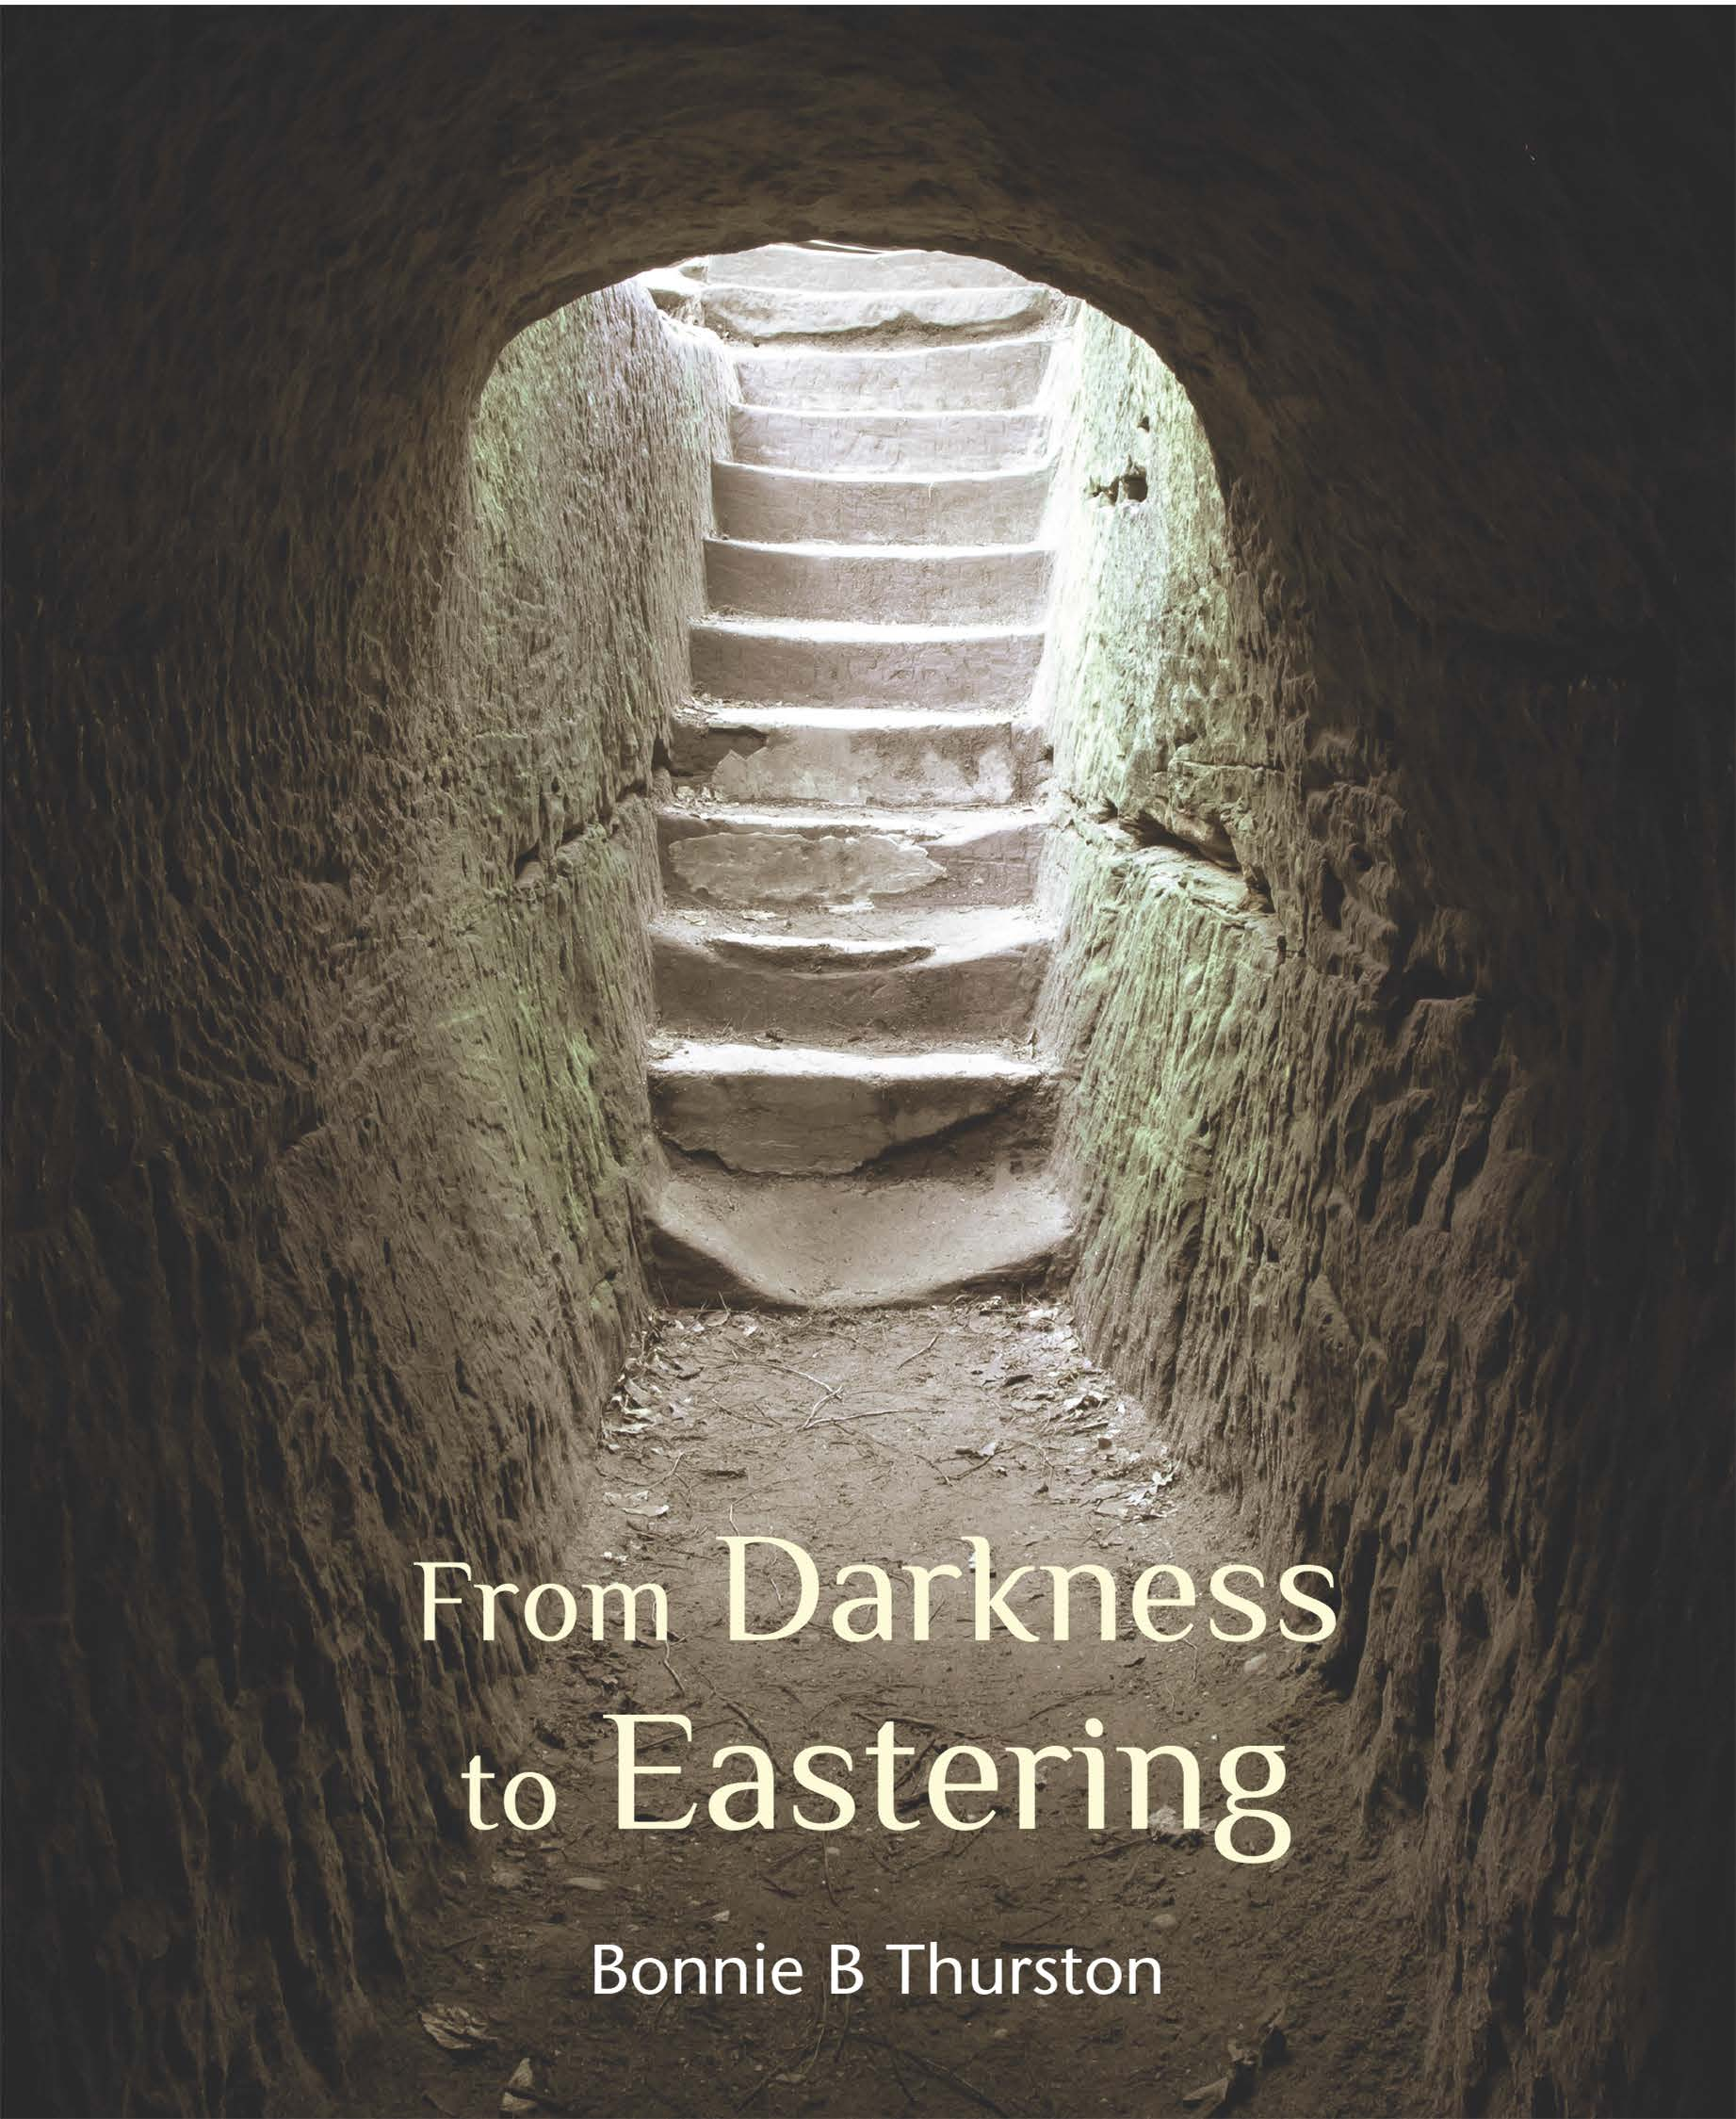 From Darkness to Eastering